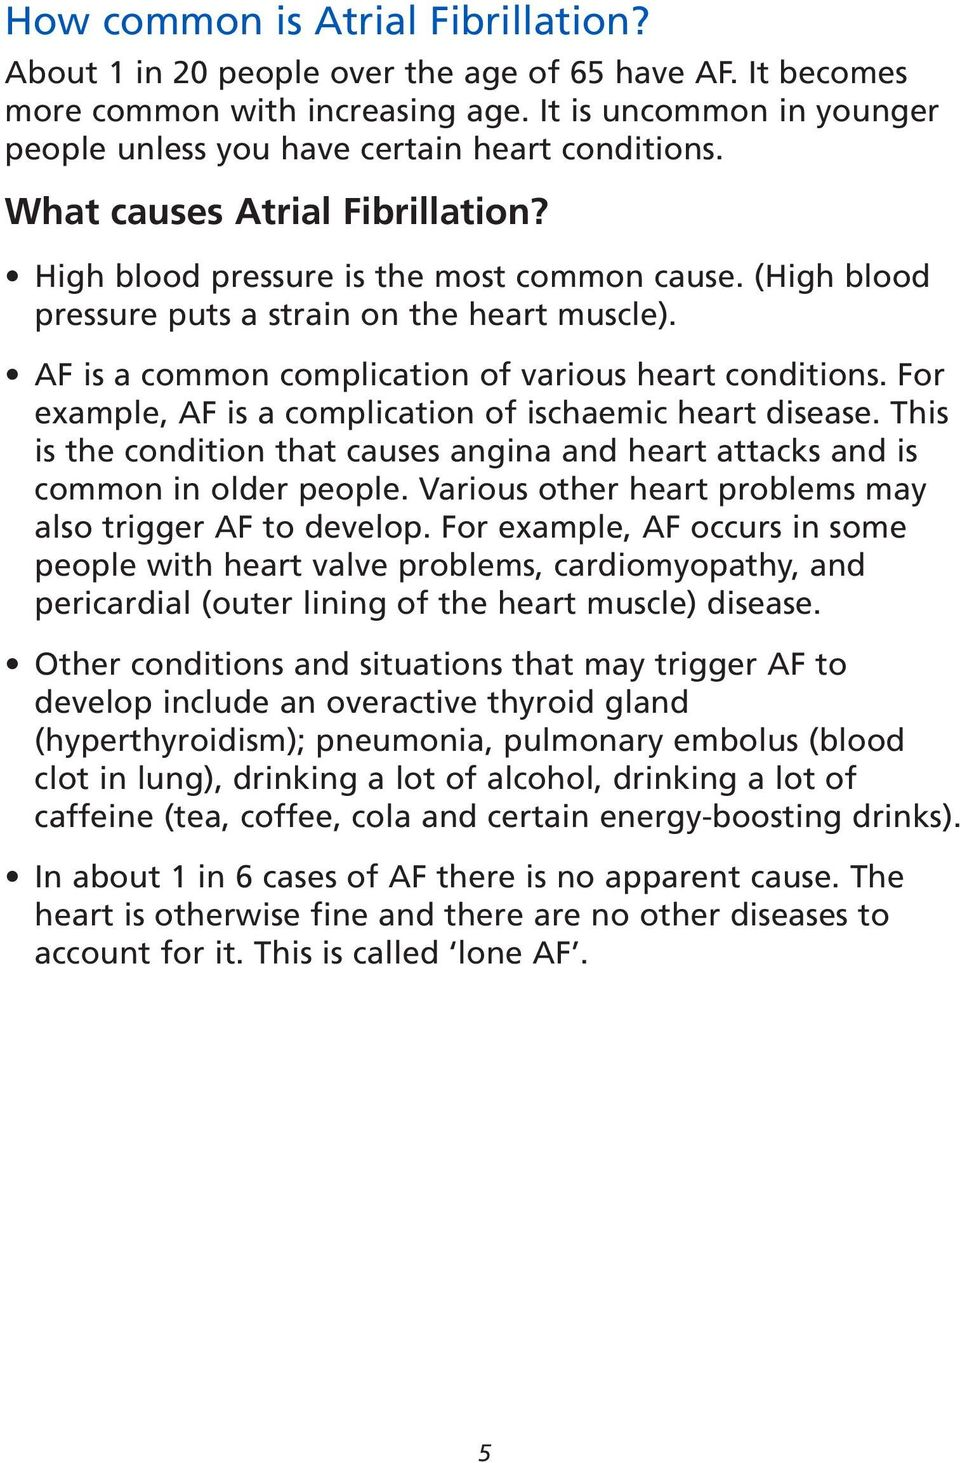 (High blood pressure puts a strain on the heart muscle). AF is a common complication of various heart conditions. For example, AF is a complication of ischaemic heart disease.